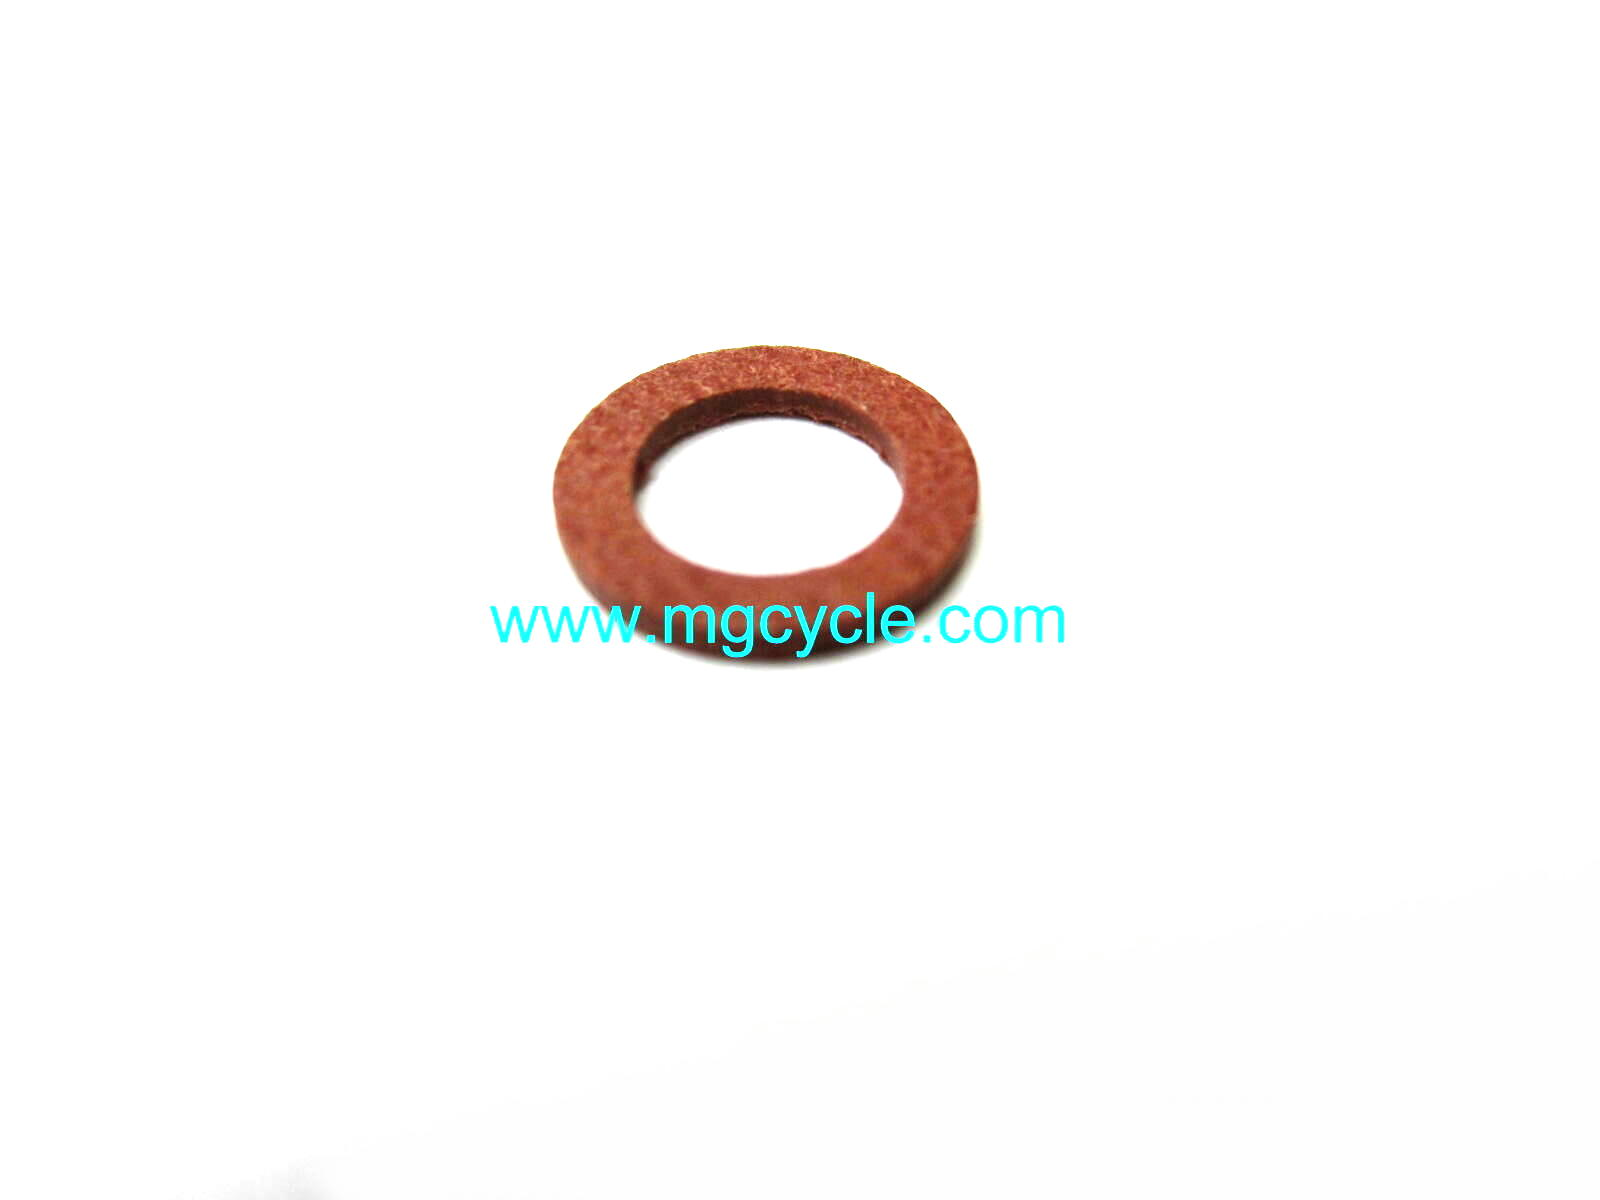 Fiber 6mm sealing washer, fork drain, carb inlet, synch plug